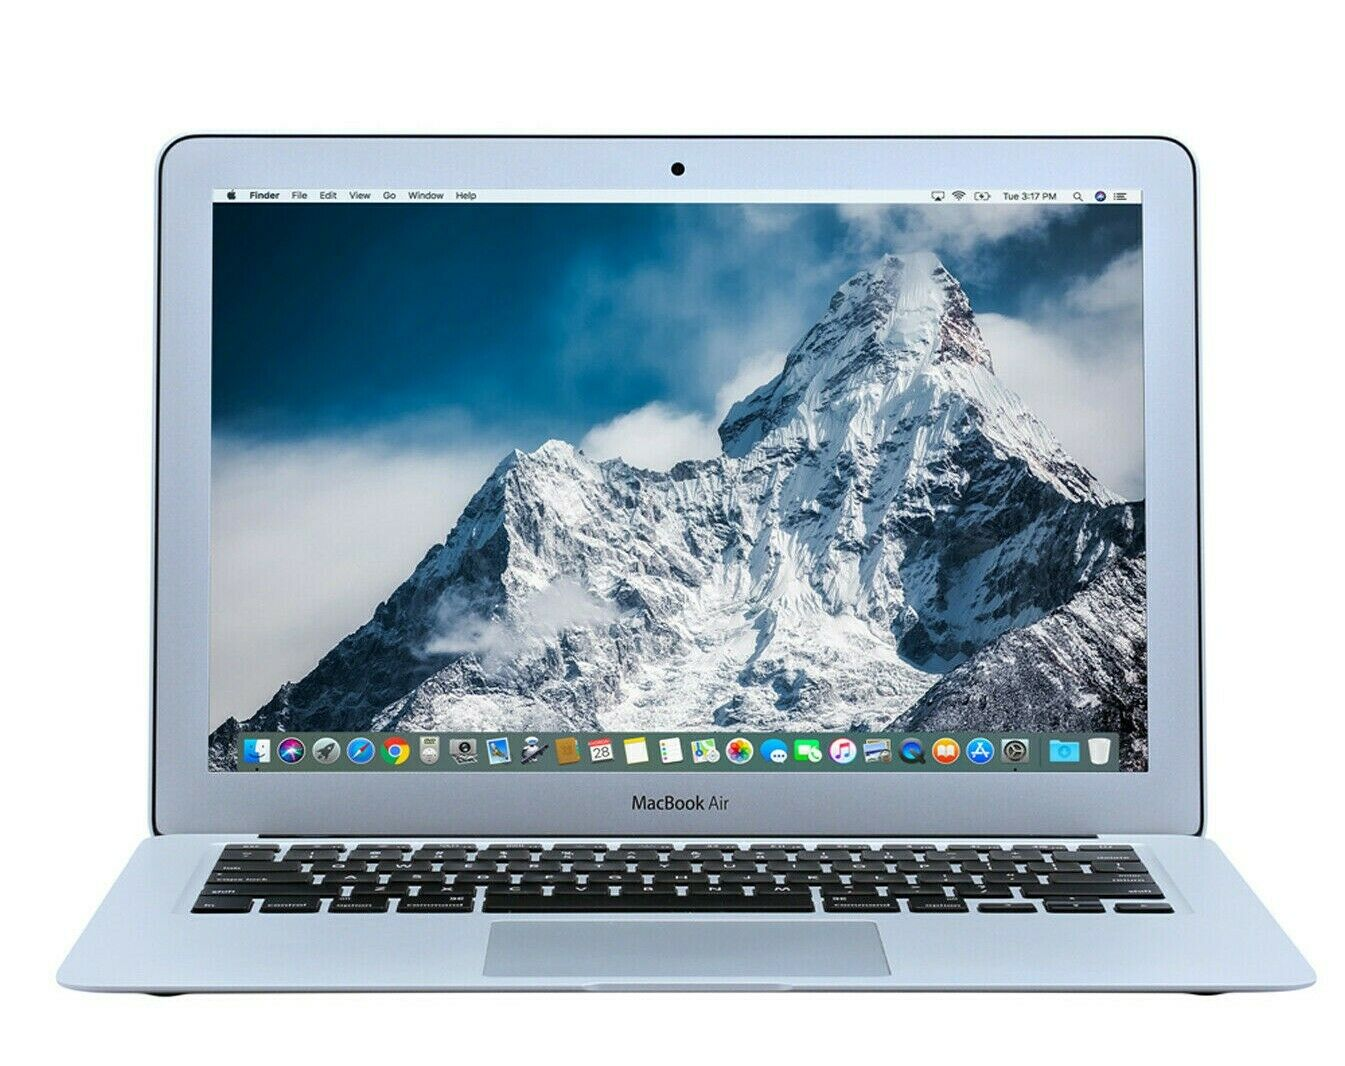 Apple MacBook Air 13 inch Laptop / 3 YEAR WARRANTY / 128GB SSD + BONUS / OS2019. Buy it now for 535.00